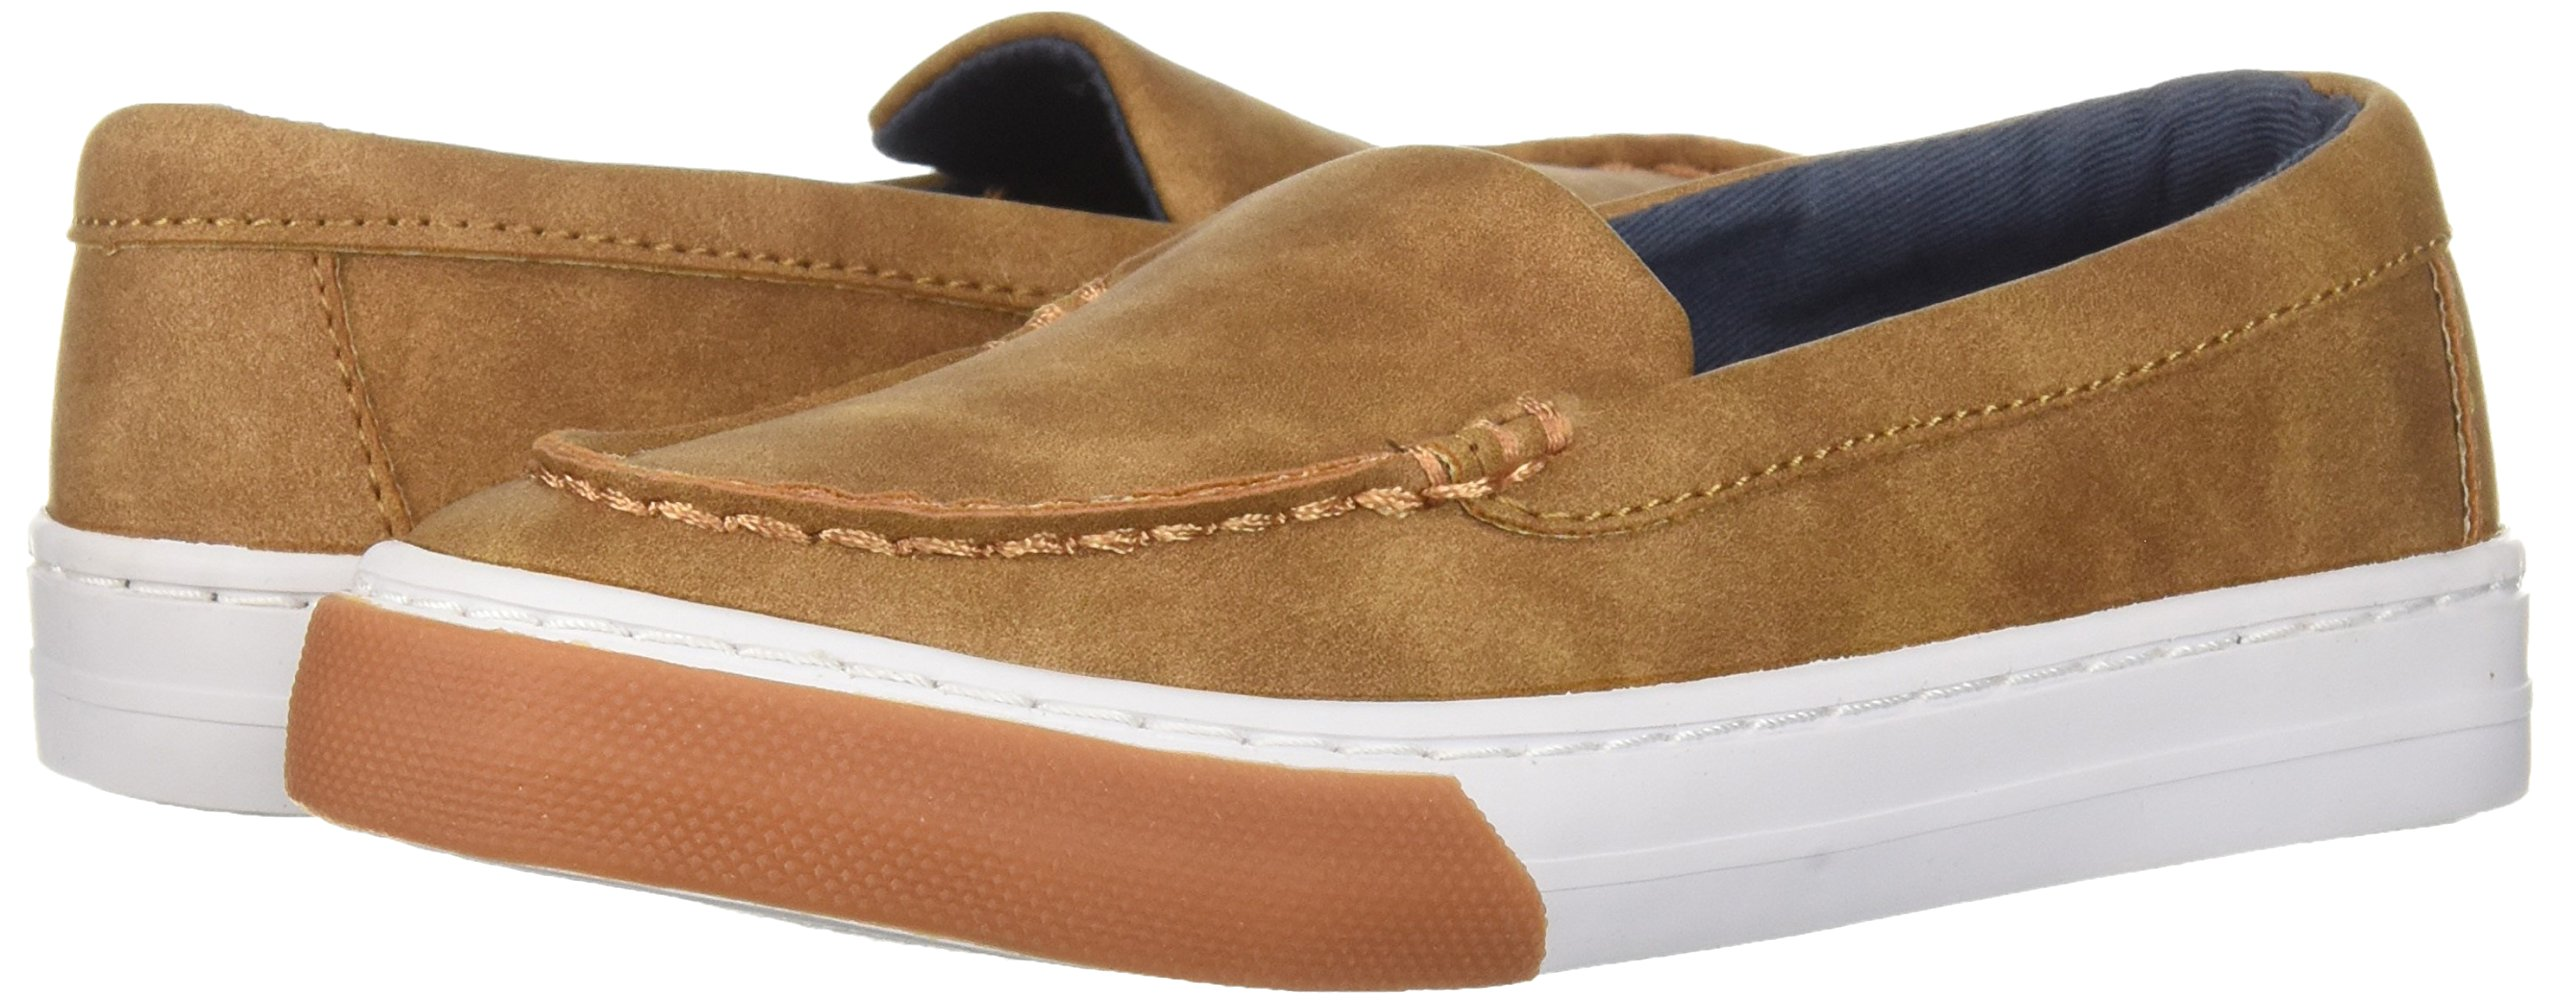 The Children's Place Kids' Sneaker,TAN-BB Indie,12 M US Little Kid by The Children's Place (Image #5)